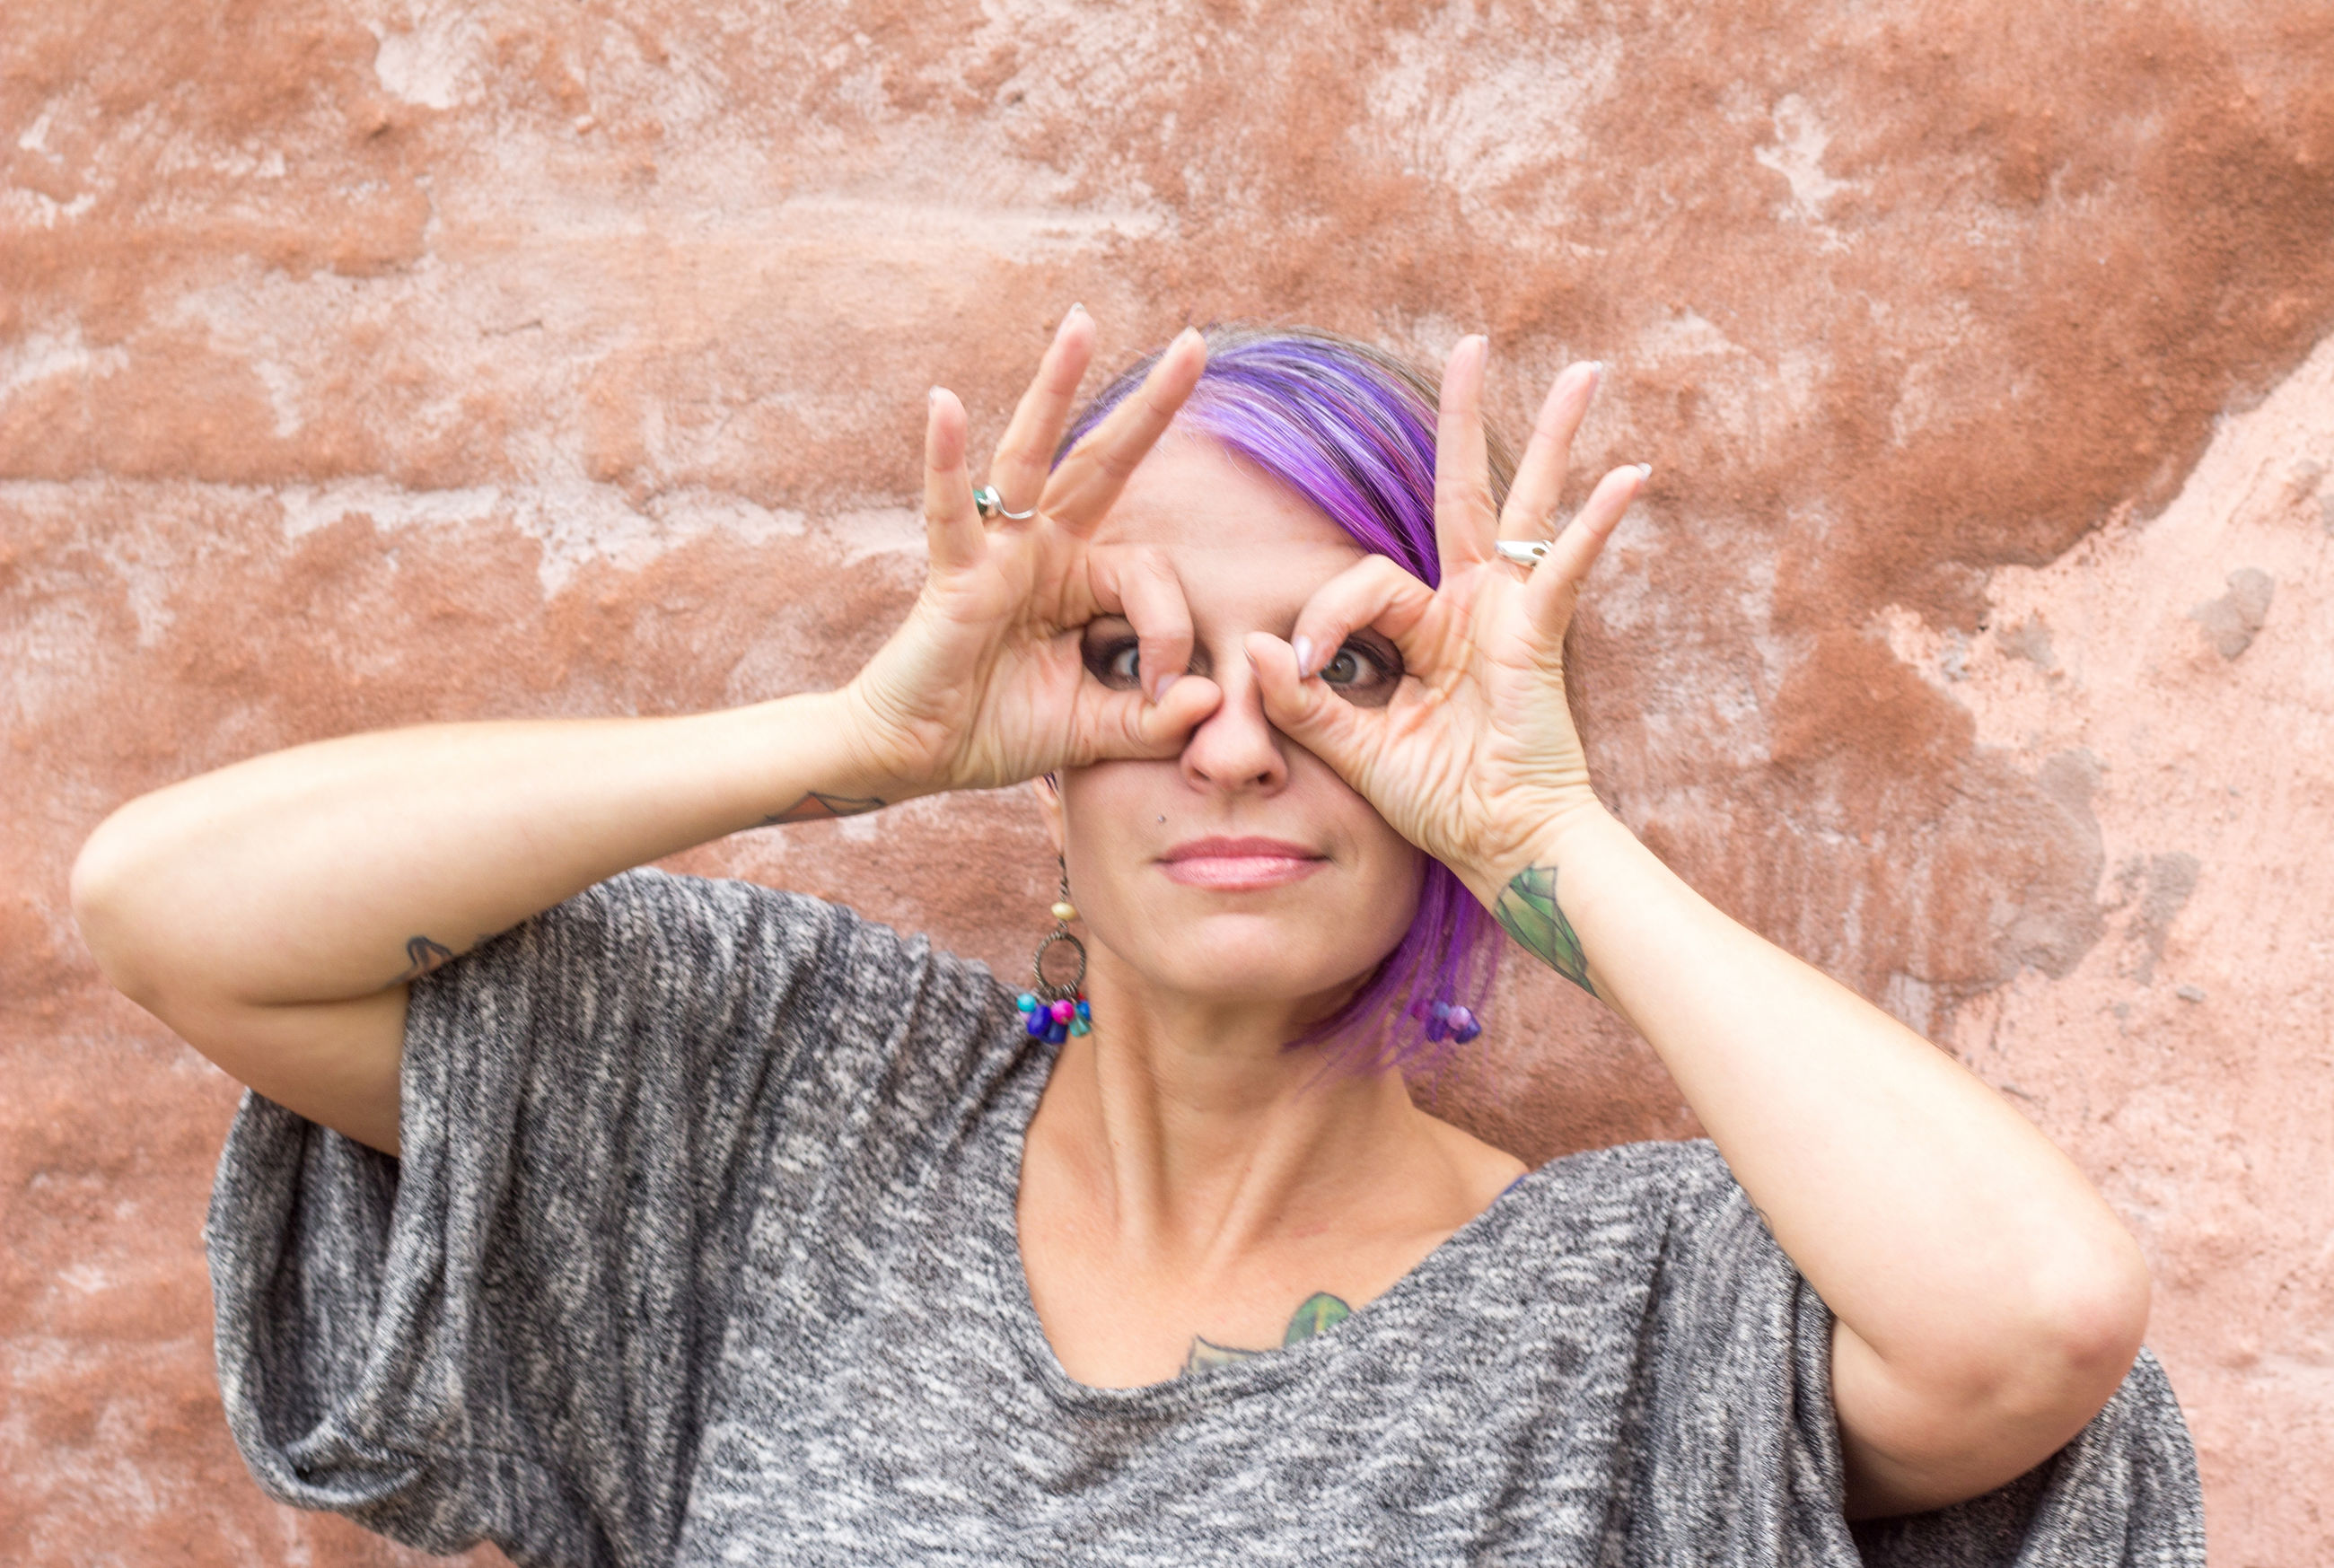 Portrait of woman making mask with hands against wall